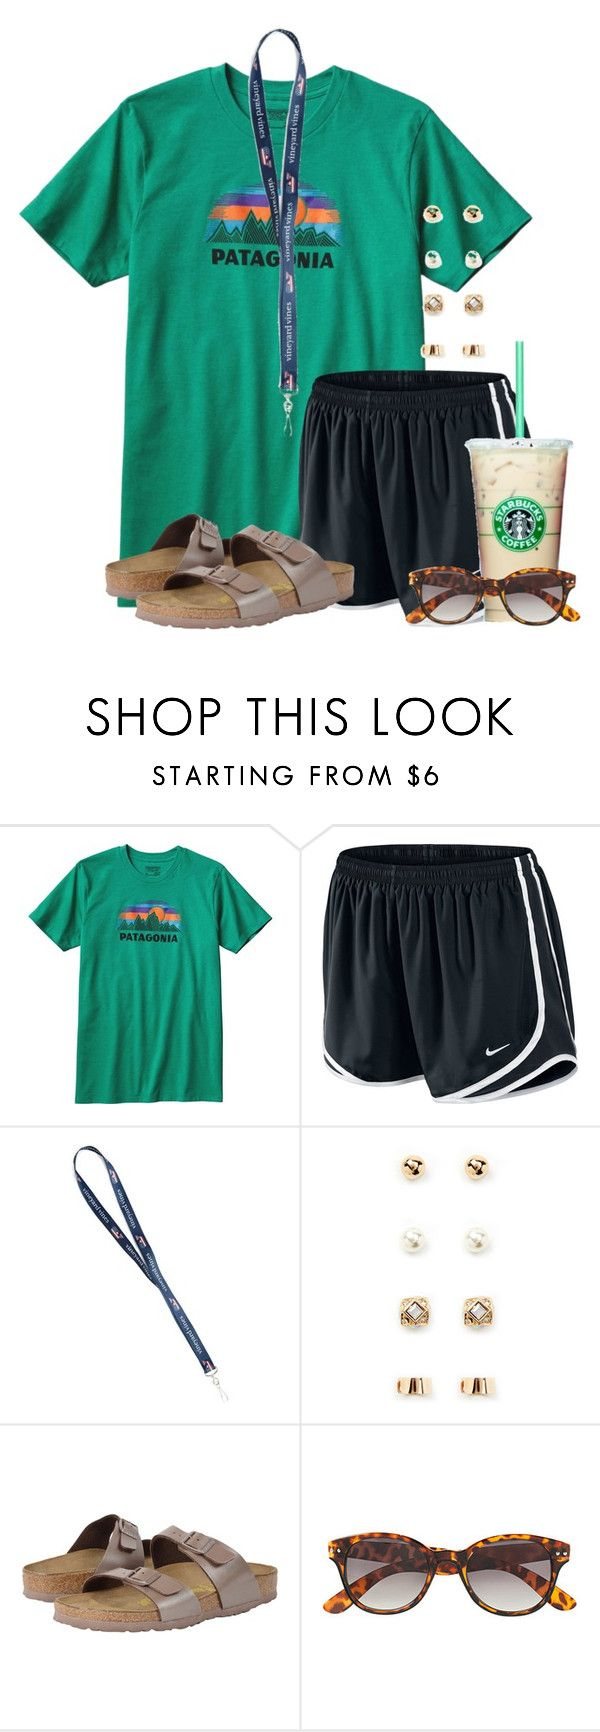 """""""Now I want a cookie:)"""" by flroasburn ❤ liked on Polyvore featuring Patagonia, NIKE, Forever 21, Birkenstock and H&M"""